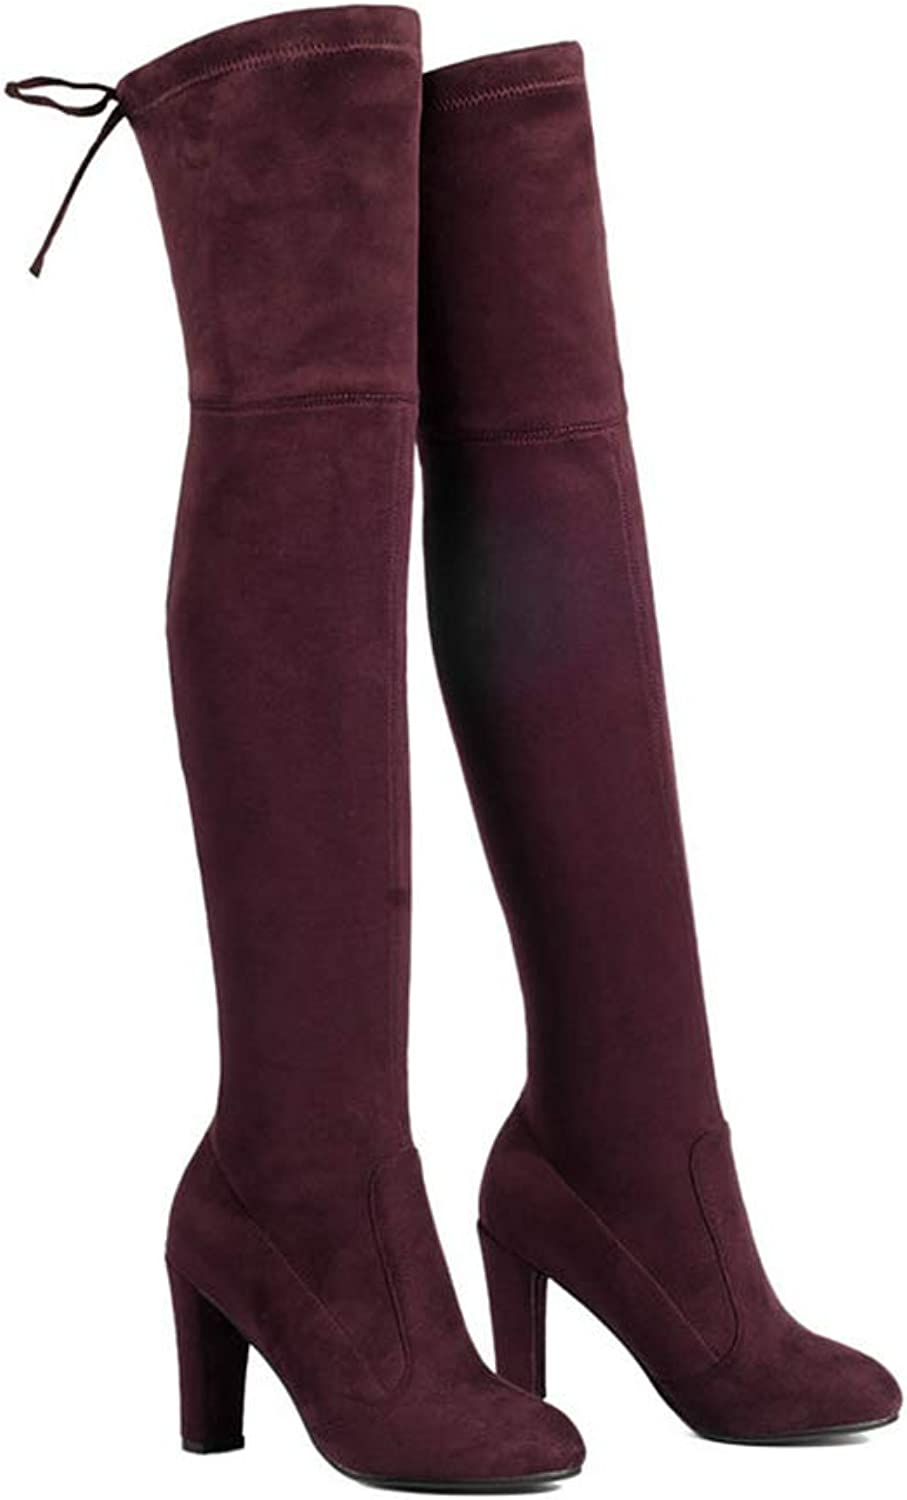 Ladies Over The Knee Boots Square High Heel Women Boots Sexy Ladies Lace Up Fashion Comfortable Boots